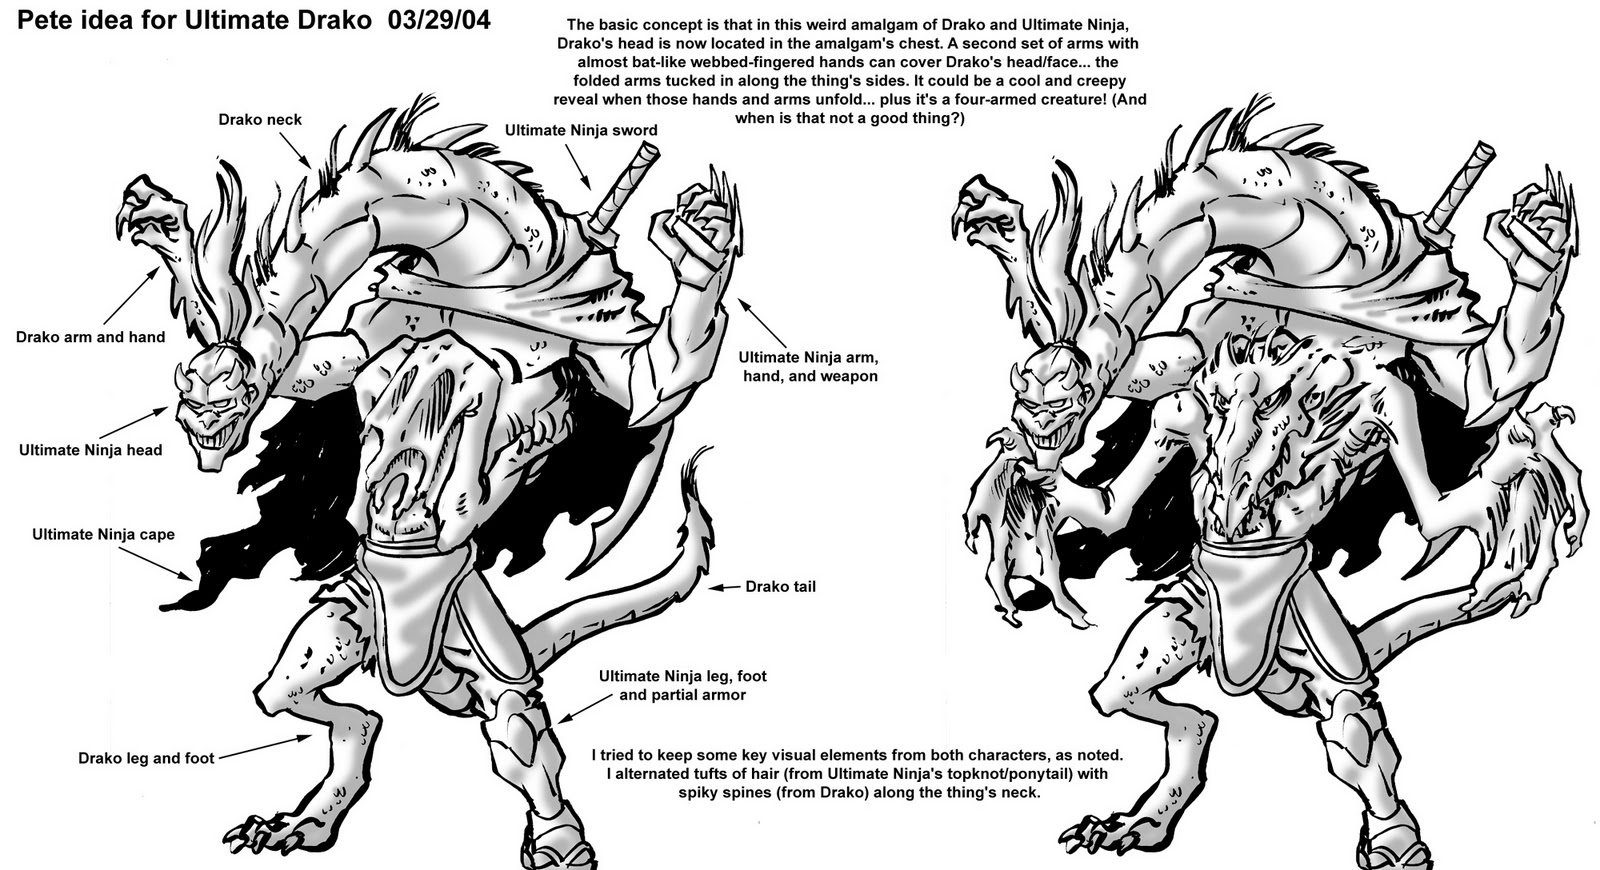 Ultimate Drako (Peter Laird's concept)